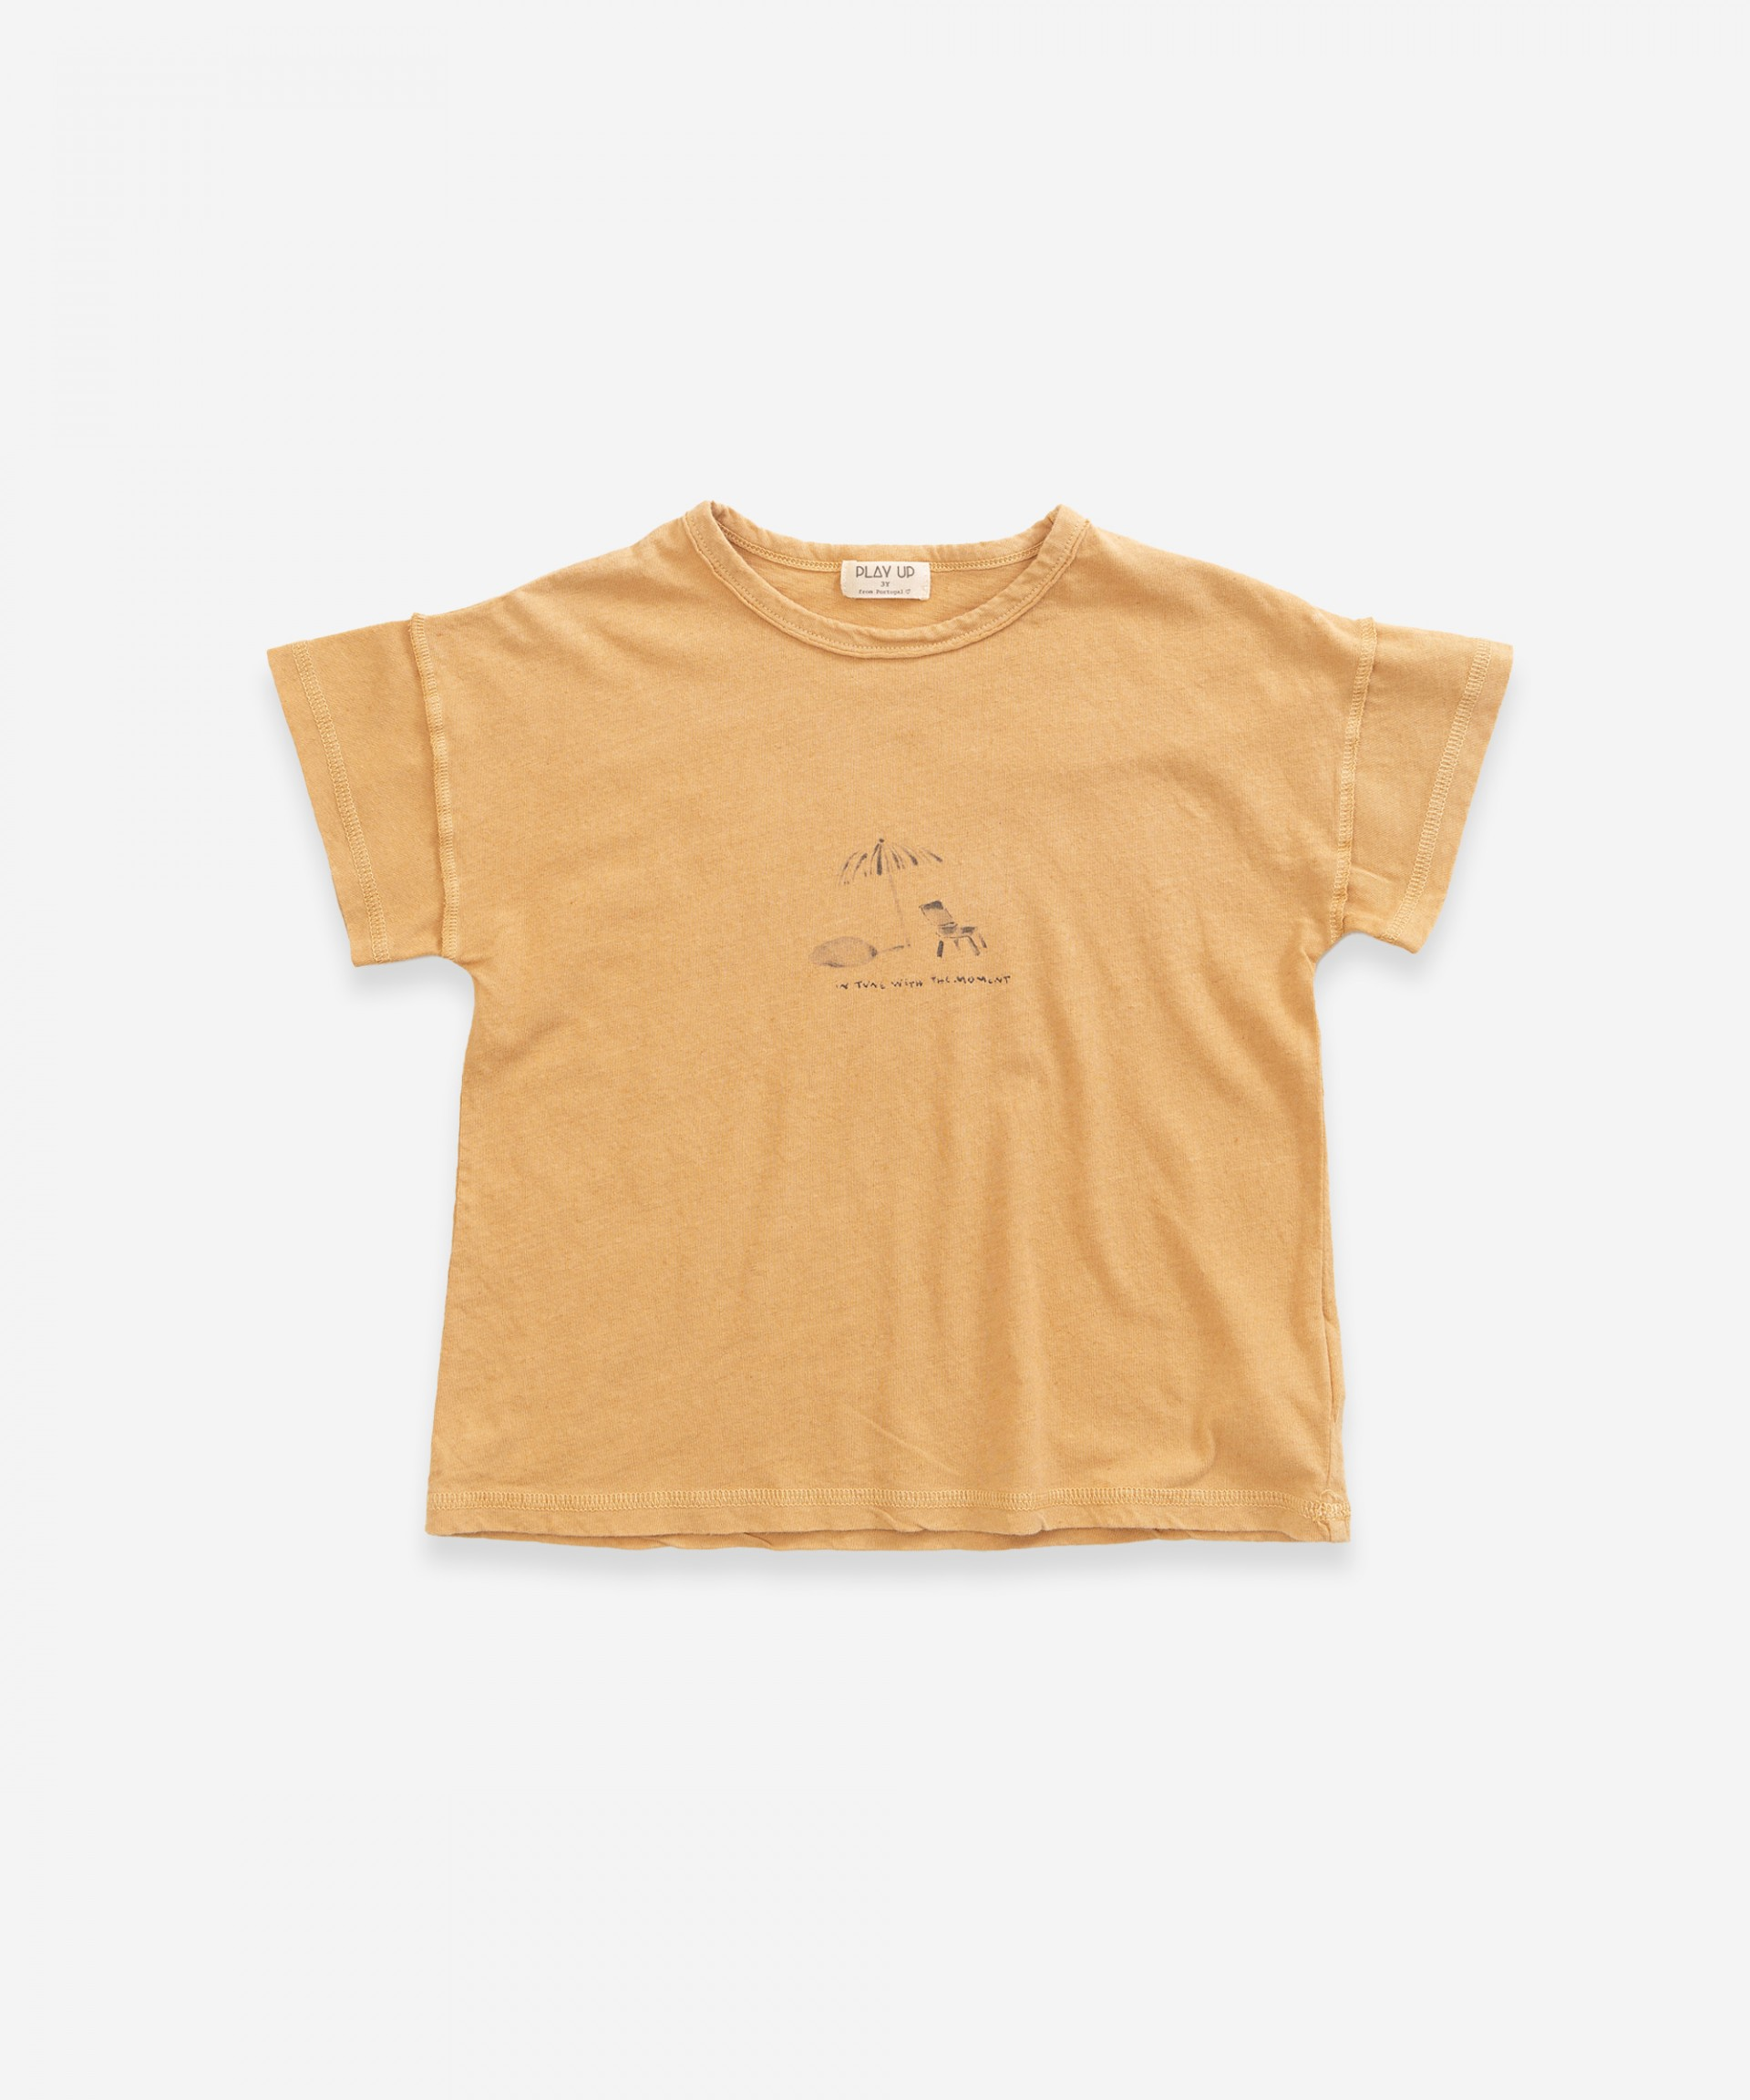 T-shirt with print | Weaving